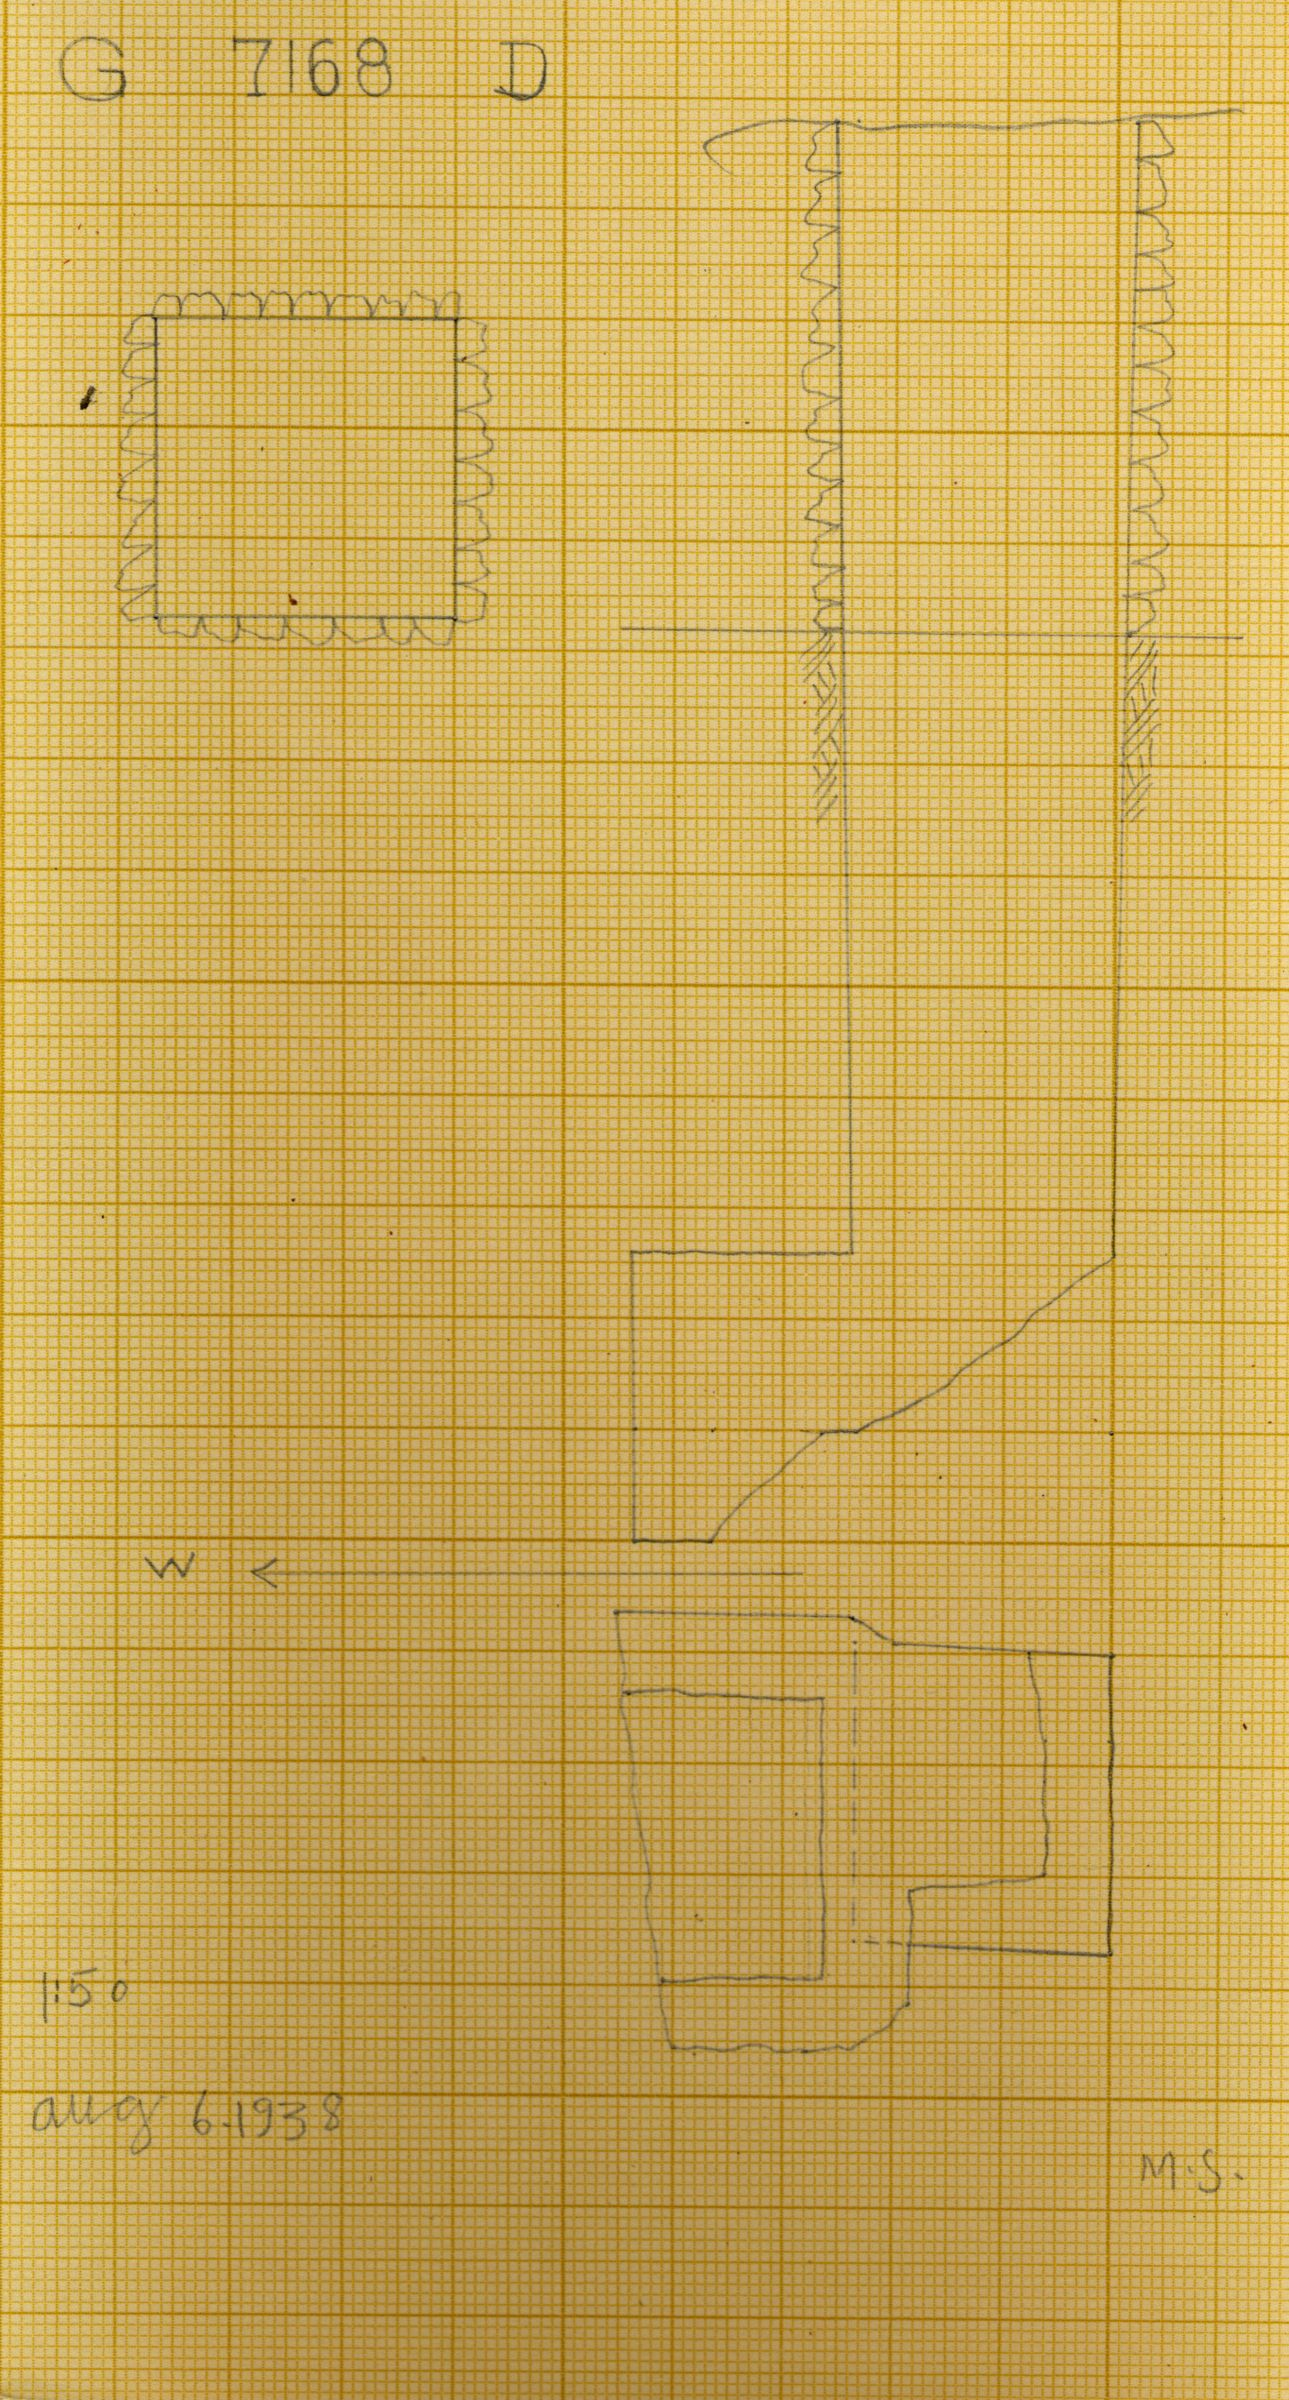 Maps and plans: G 7168, Shaft D